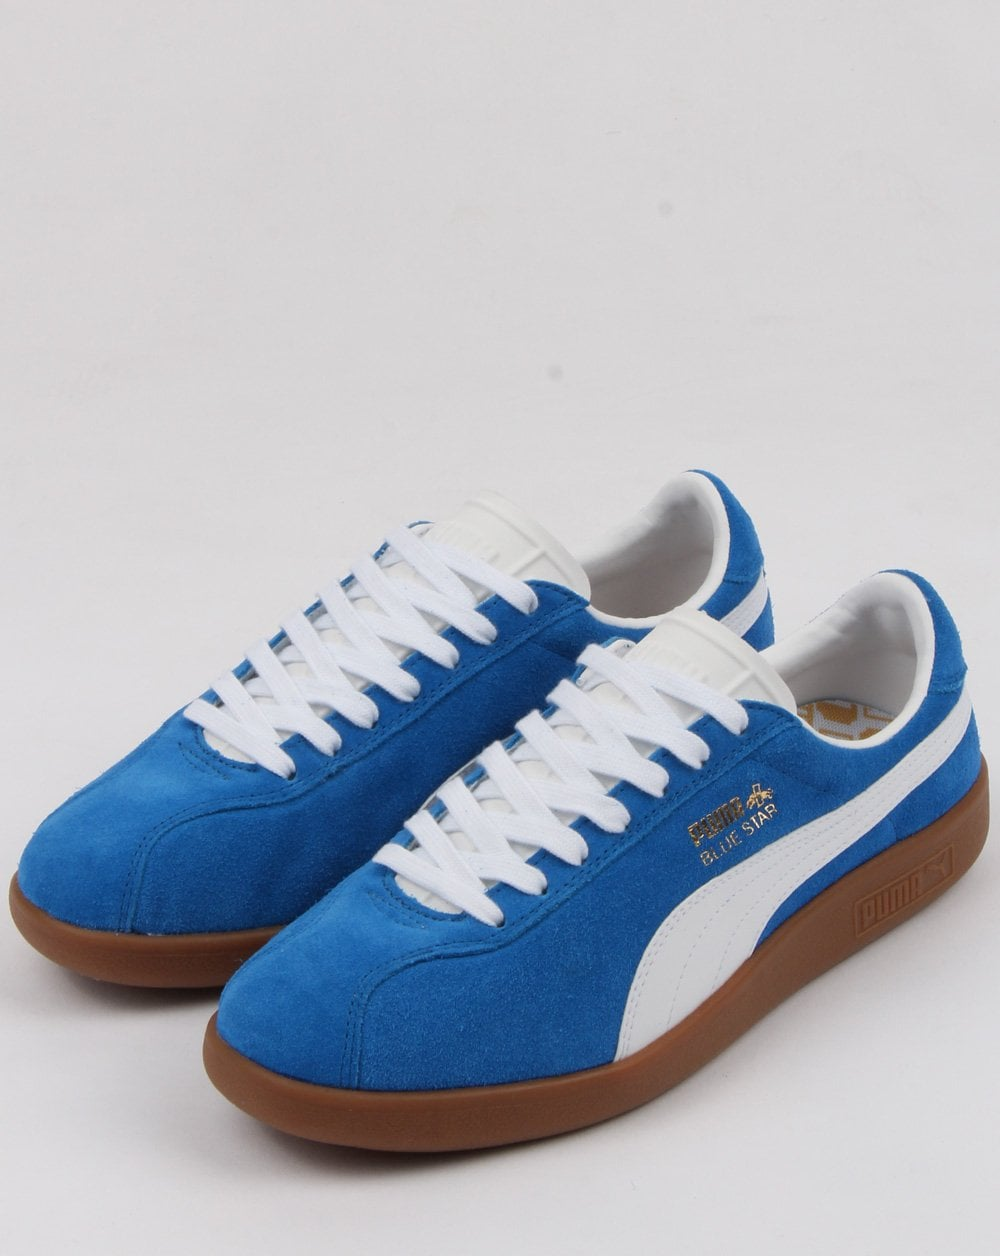 7a99cf38281936 Puma Blue Star Trainer Royal Blue white